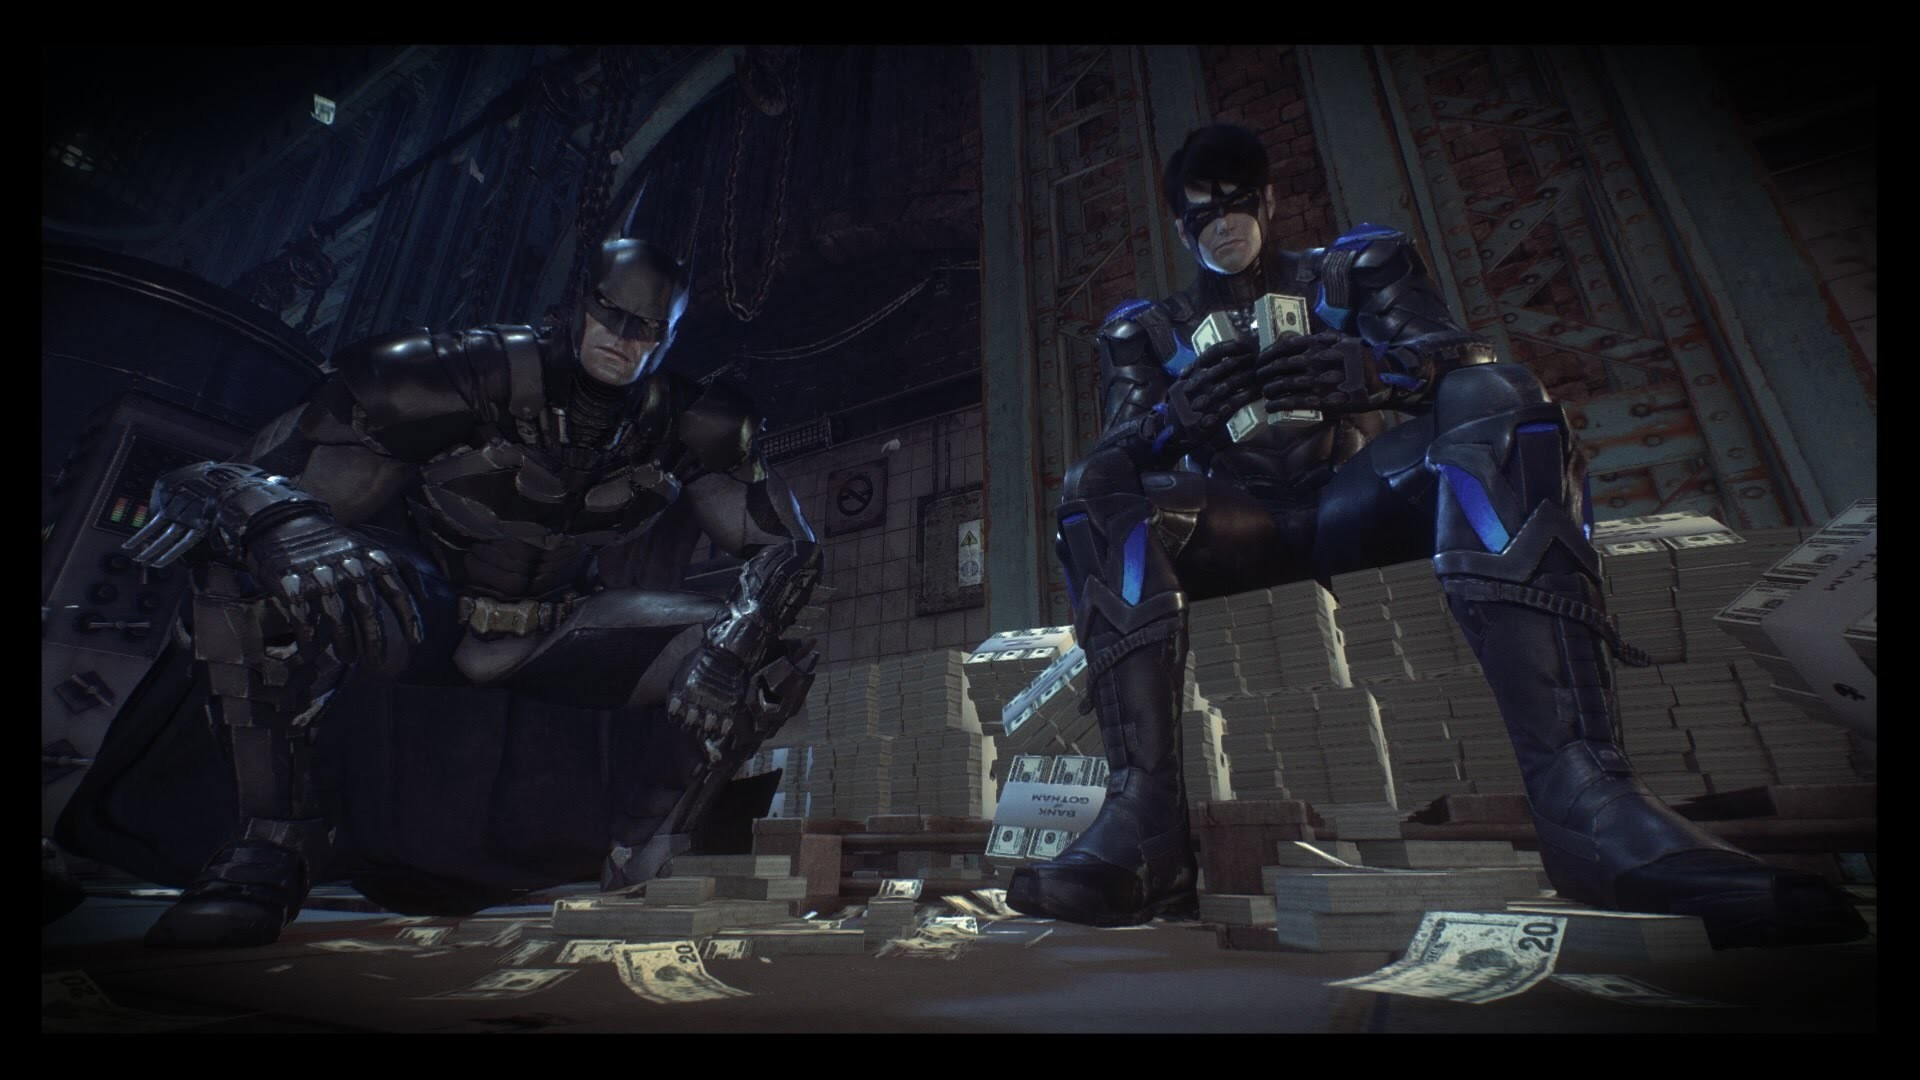 Res: 1920x1080, (Game Capture Test) Kerem Plays Batman: Arkham Knight - Nightwing Wrecks  the Iceberg Lounge - YouTube